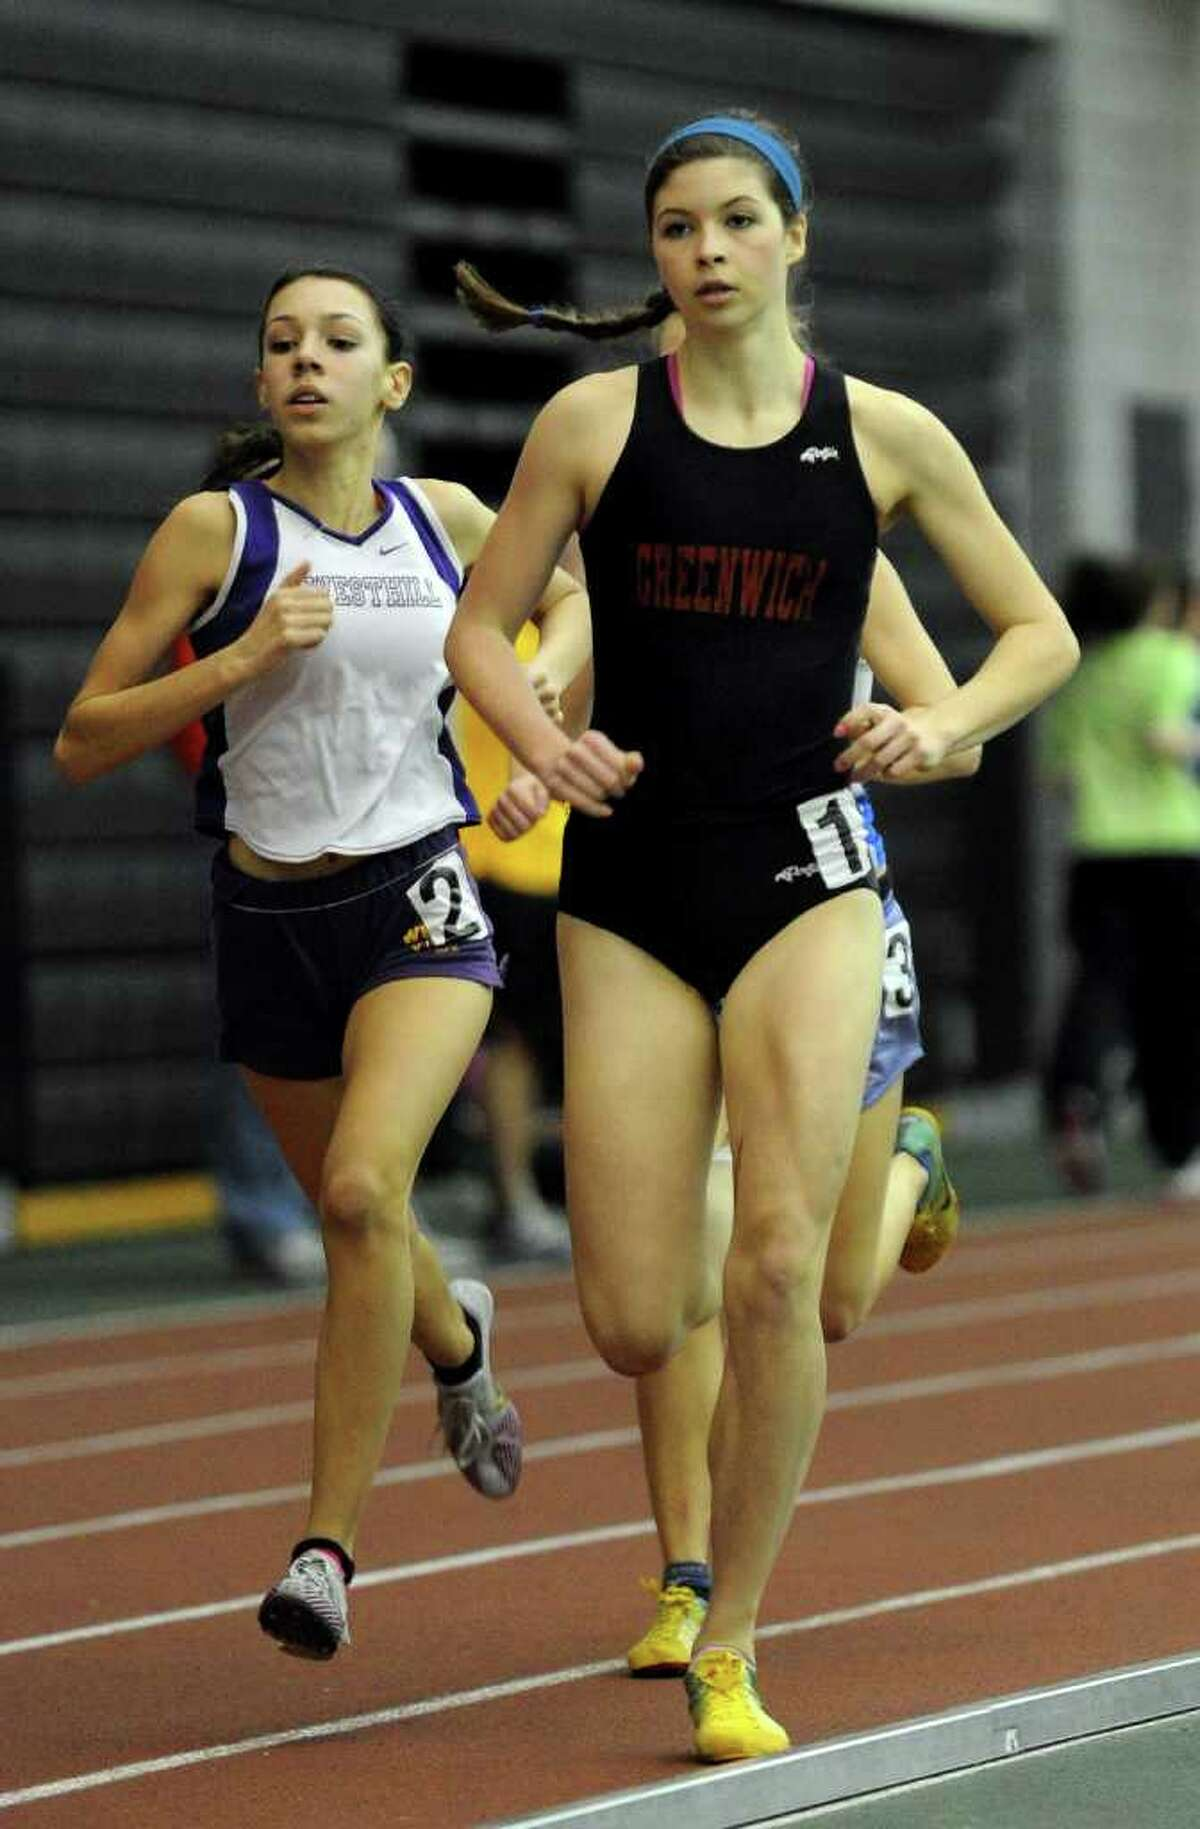 Greenwich's Kiki Kates competes in the 1000 meter run, during FICAC track championship action in New Haven, Conn. on Thursday February 3, 2011.